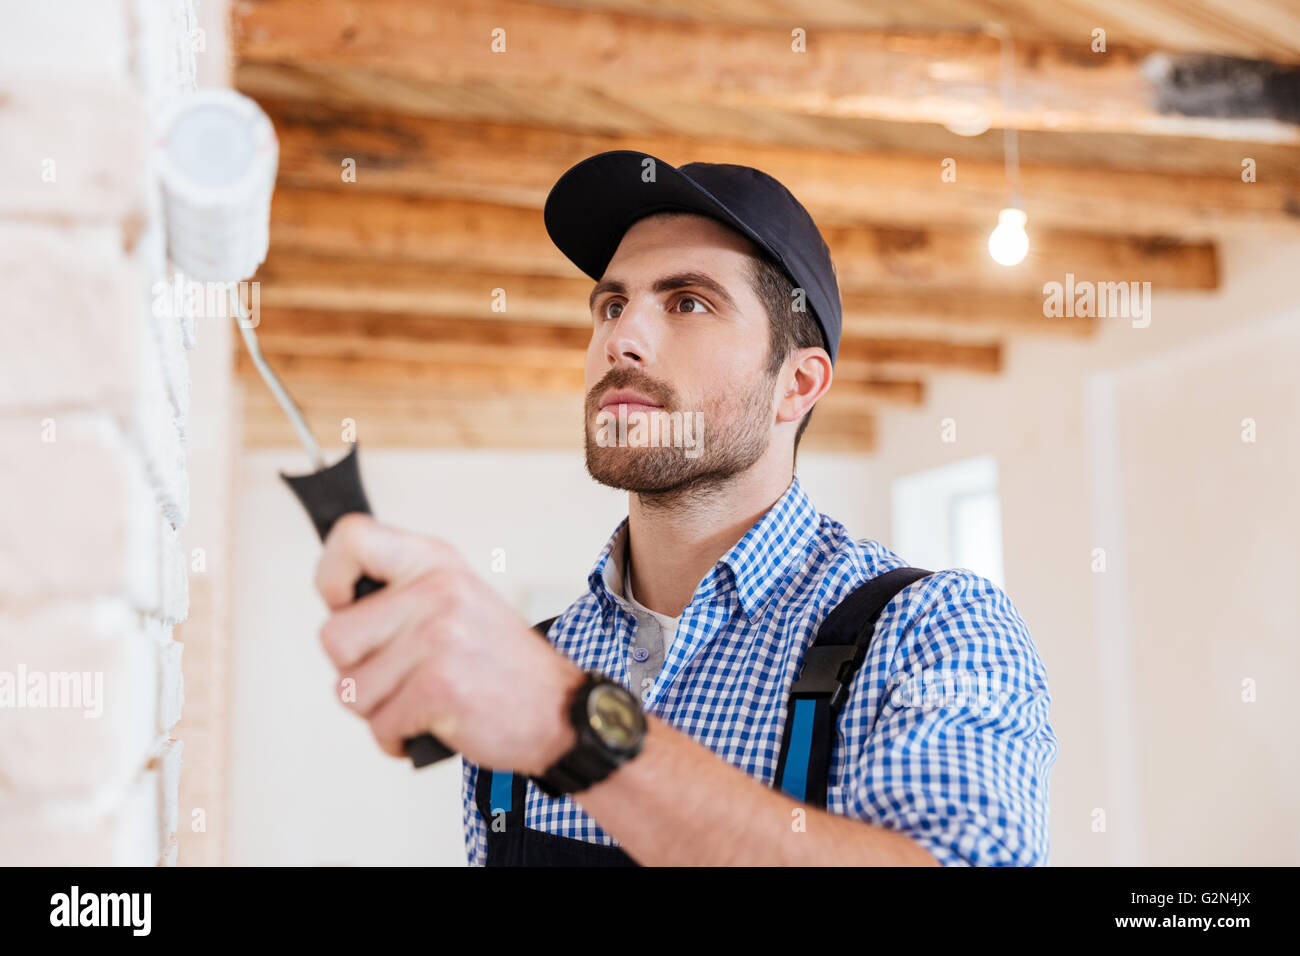 Close-up portrait of a builder worker decorator painting wall indoors - Stock Image